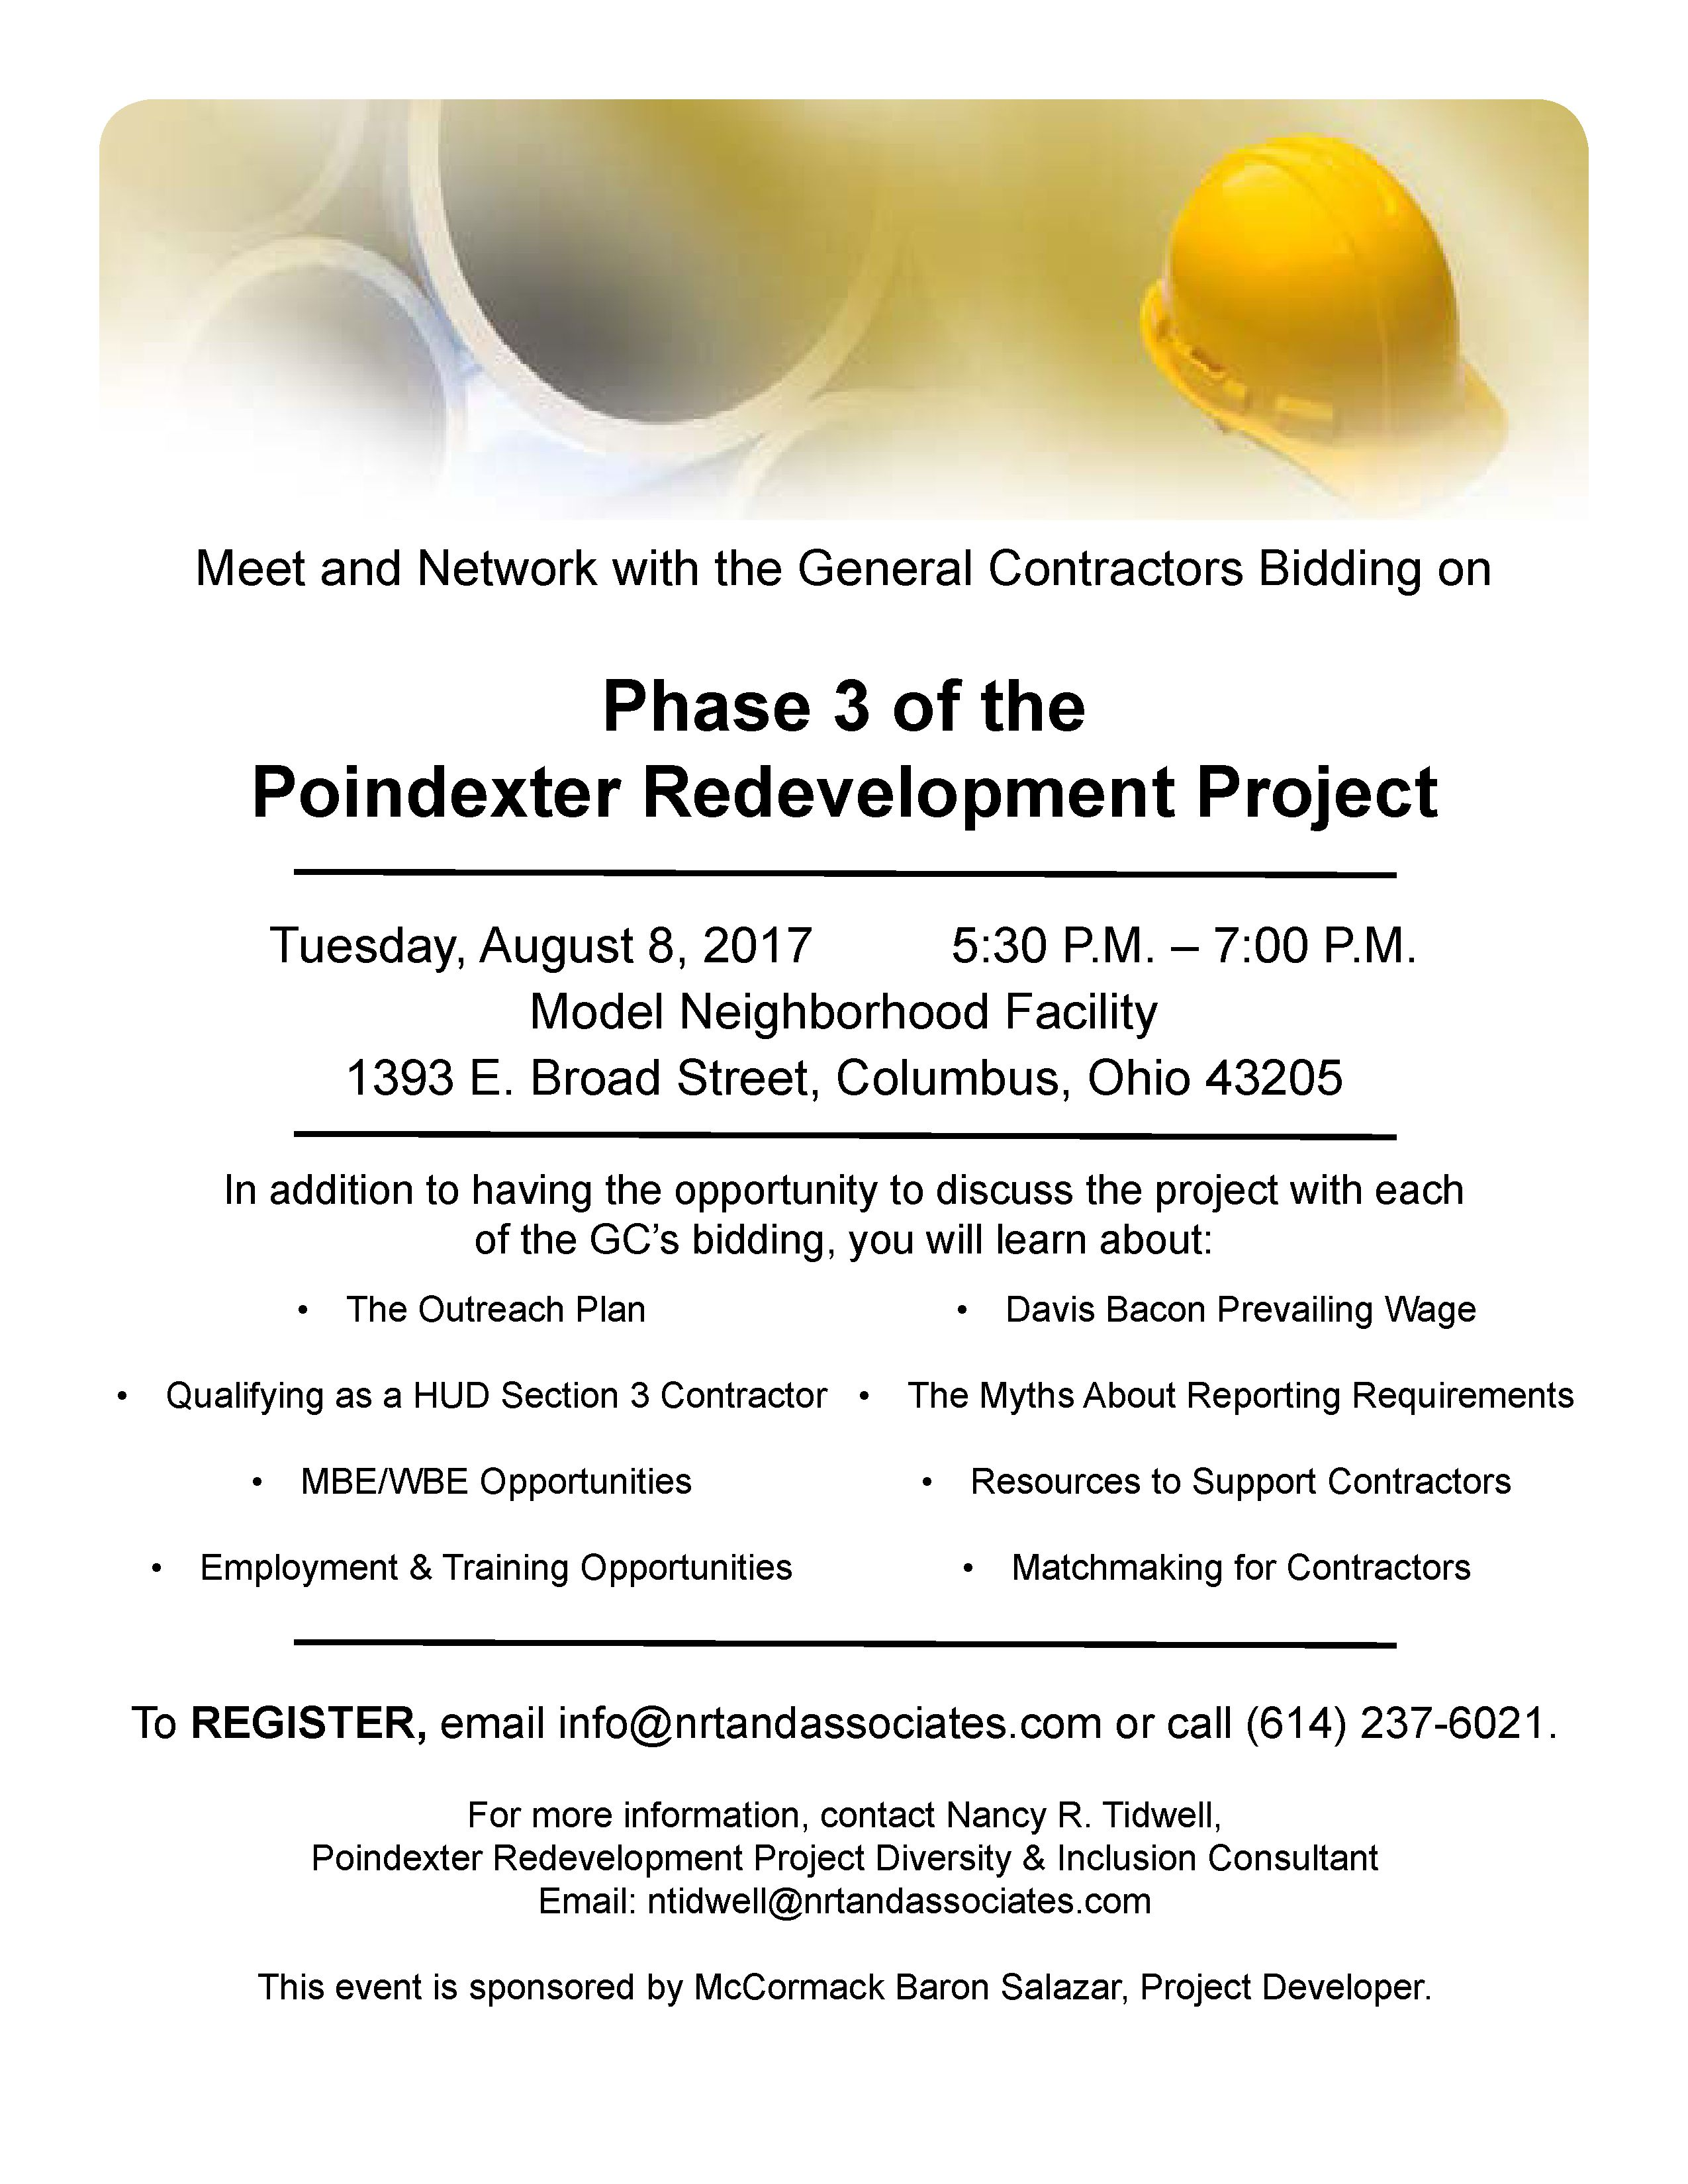 Meet And Greet For Poindexter Phase 3 Redevelopment Ohiombe